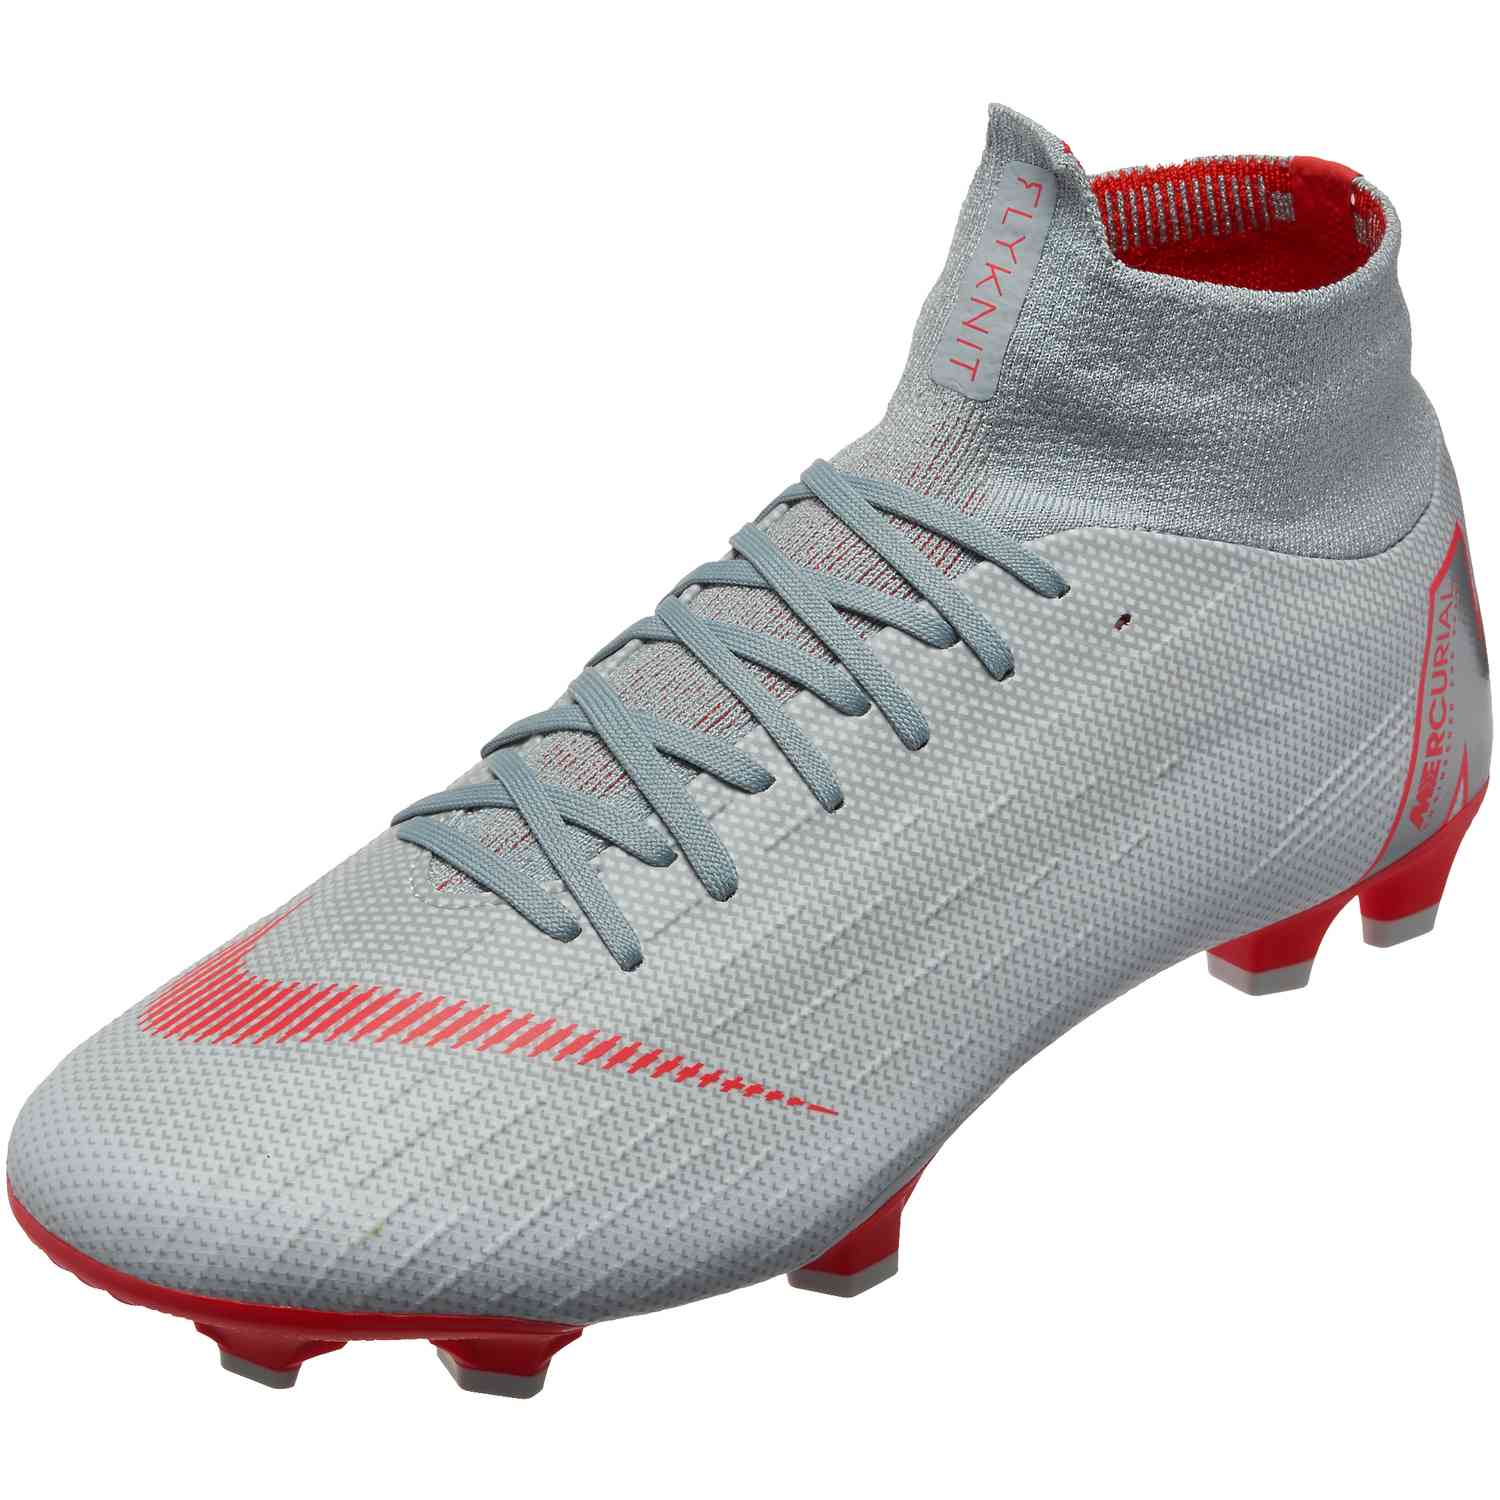 low priced 67970 438d2 Nike Superfly 6 Pro FG - Wolf Grey/Light Crimson/Pure Platinum